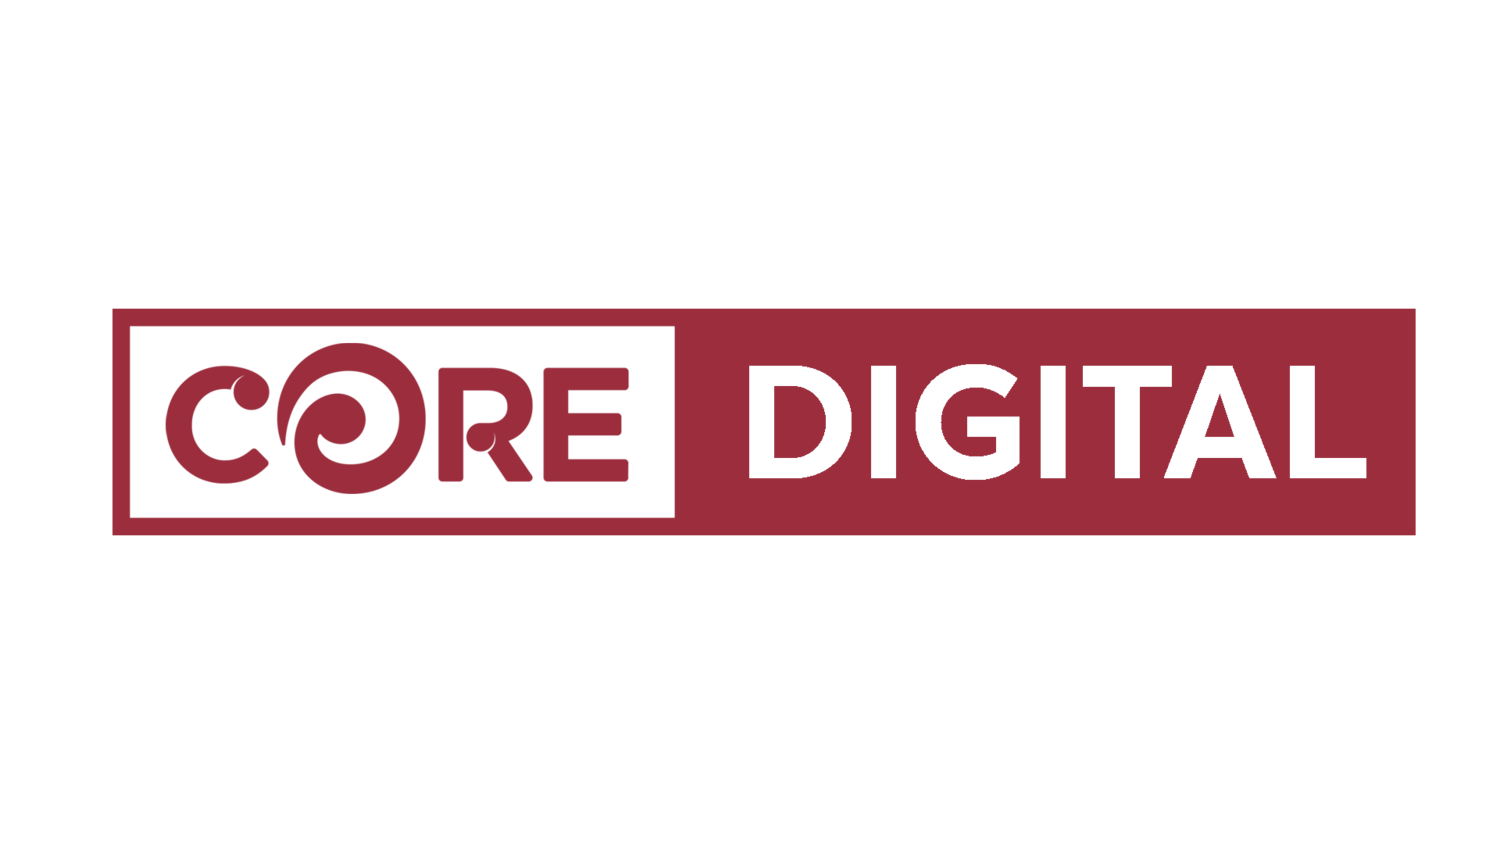 CORE digital video